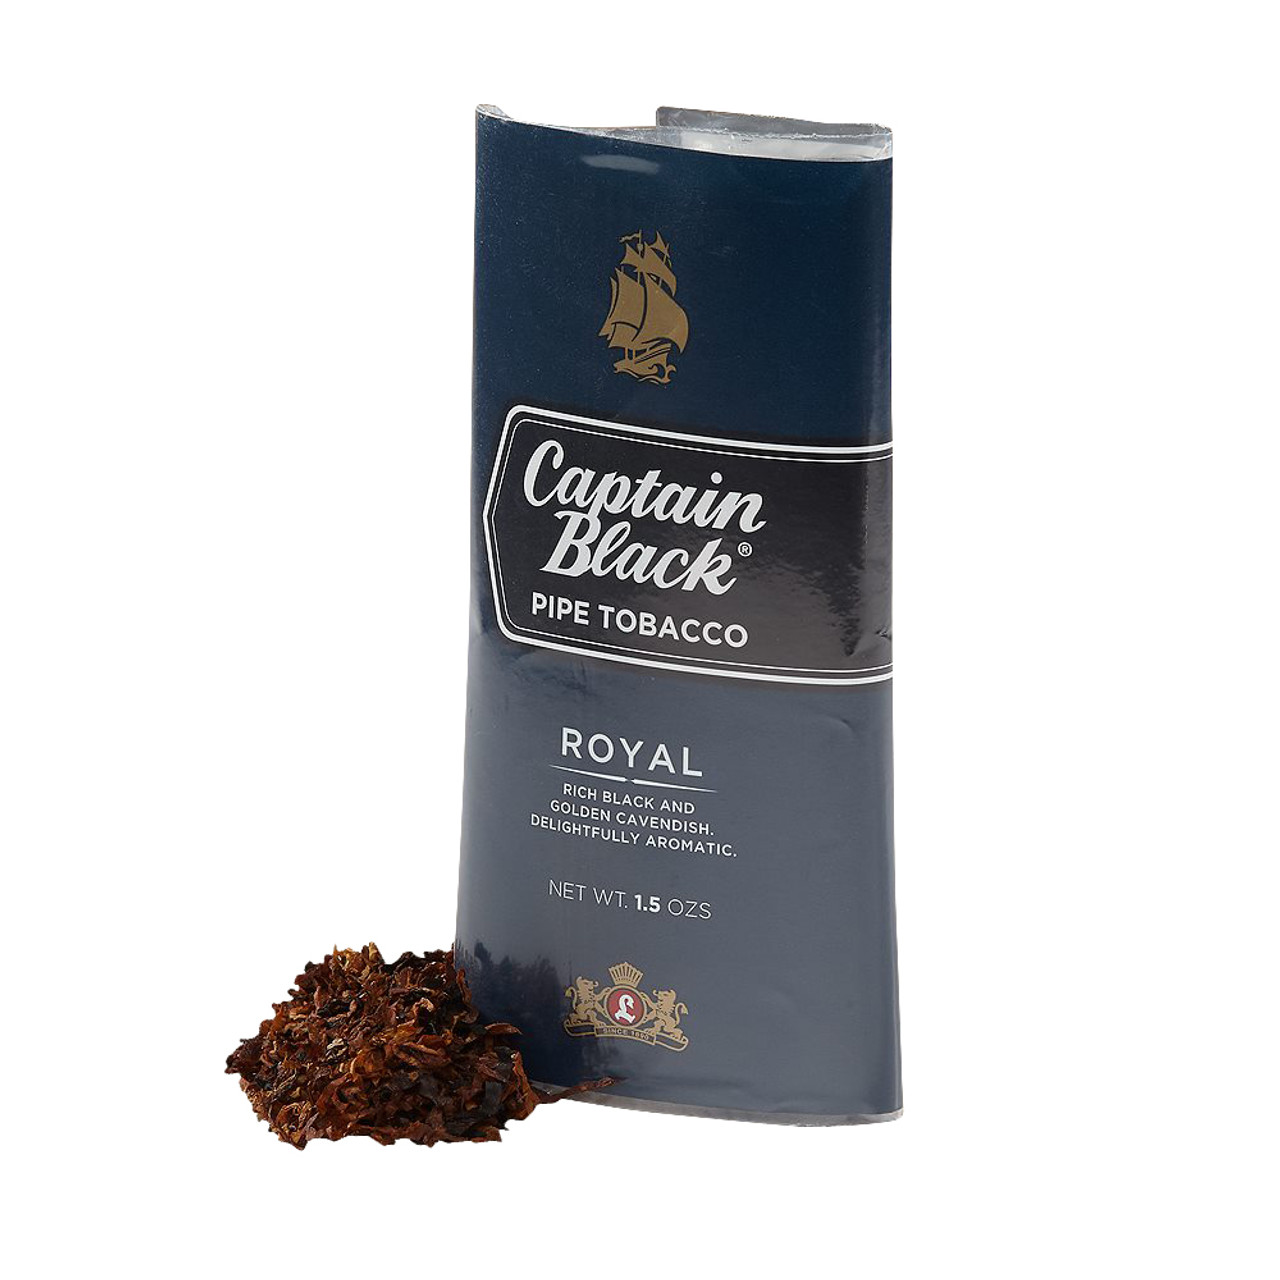 Captain Black Royal Pipe Tobacco | 1.5 OZ POUCH - 6 COUNT